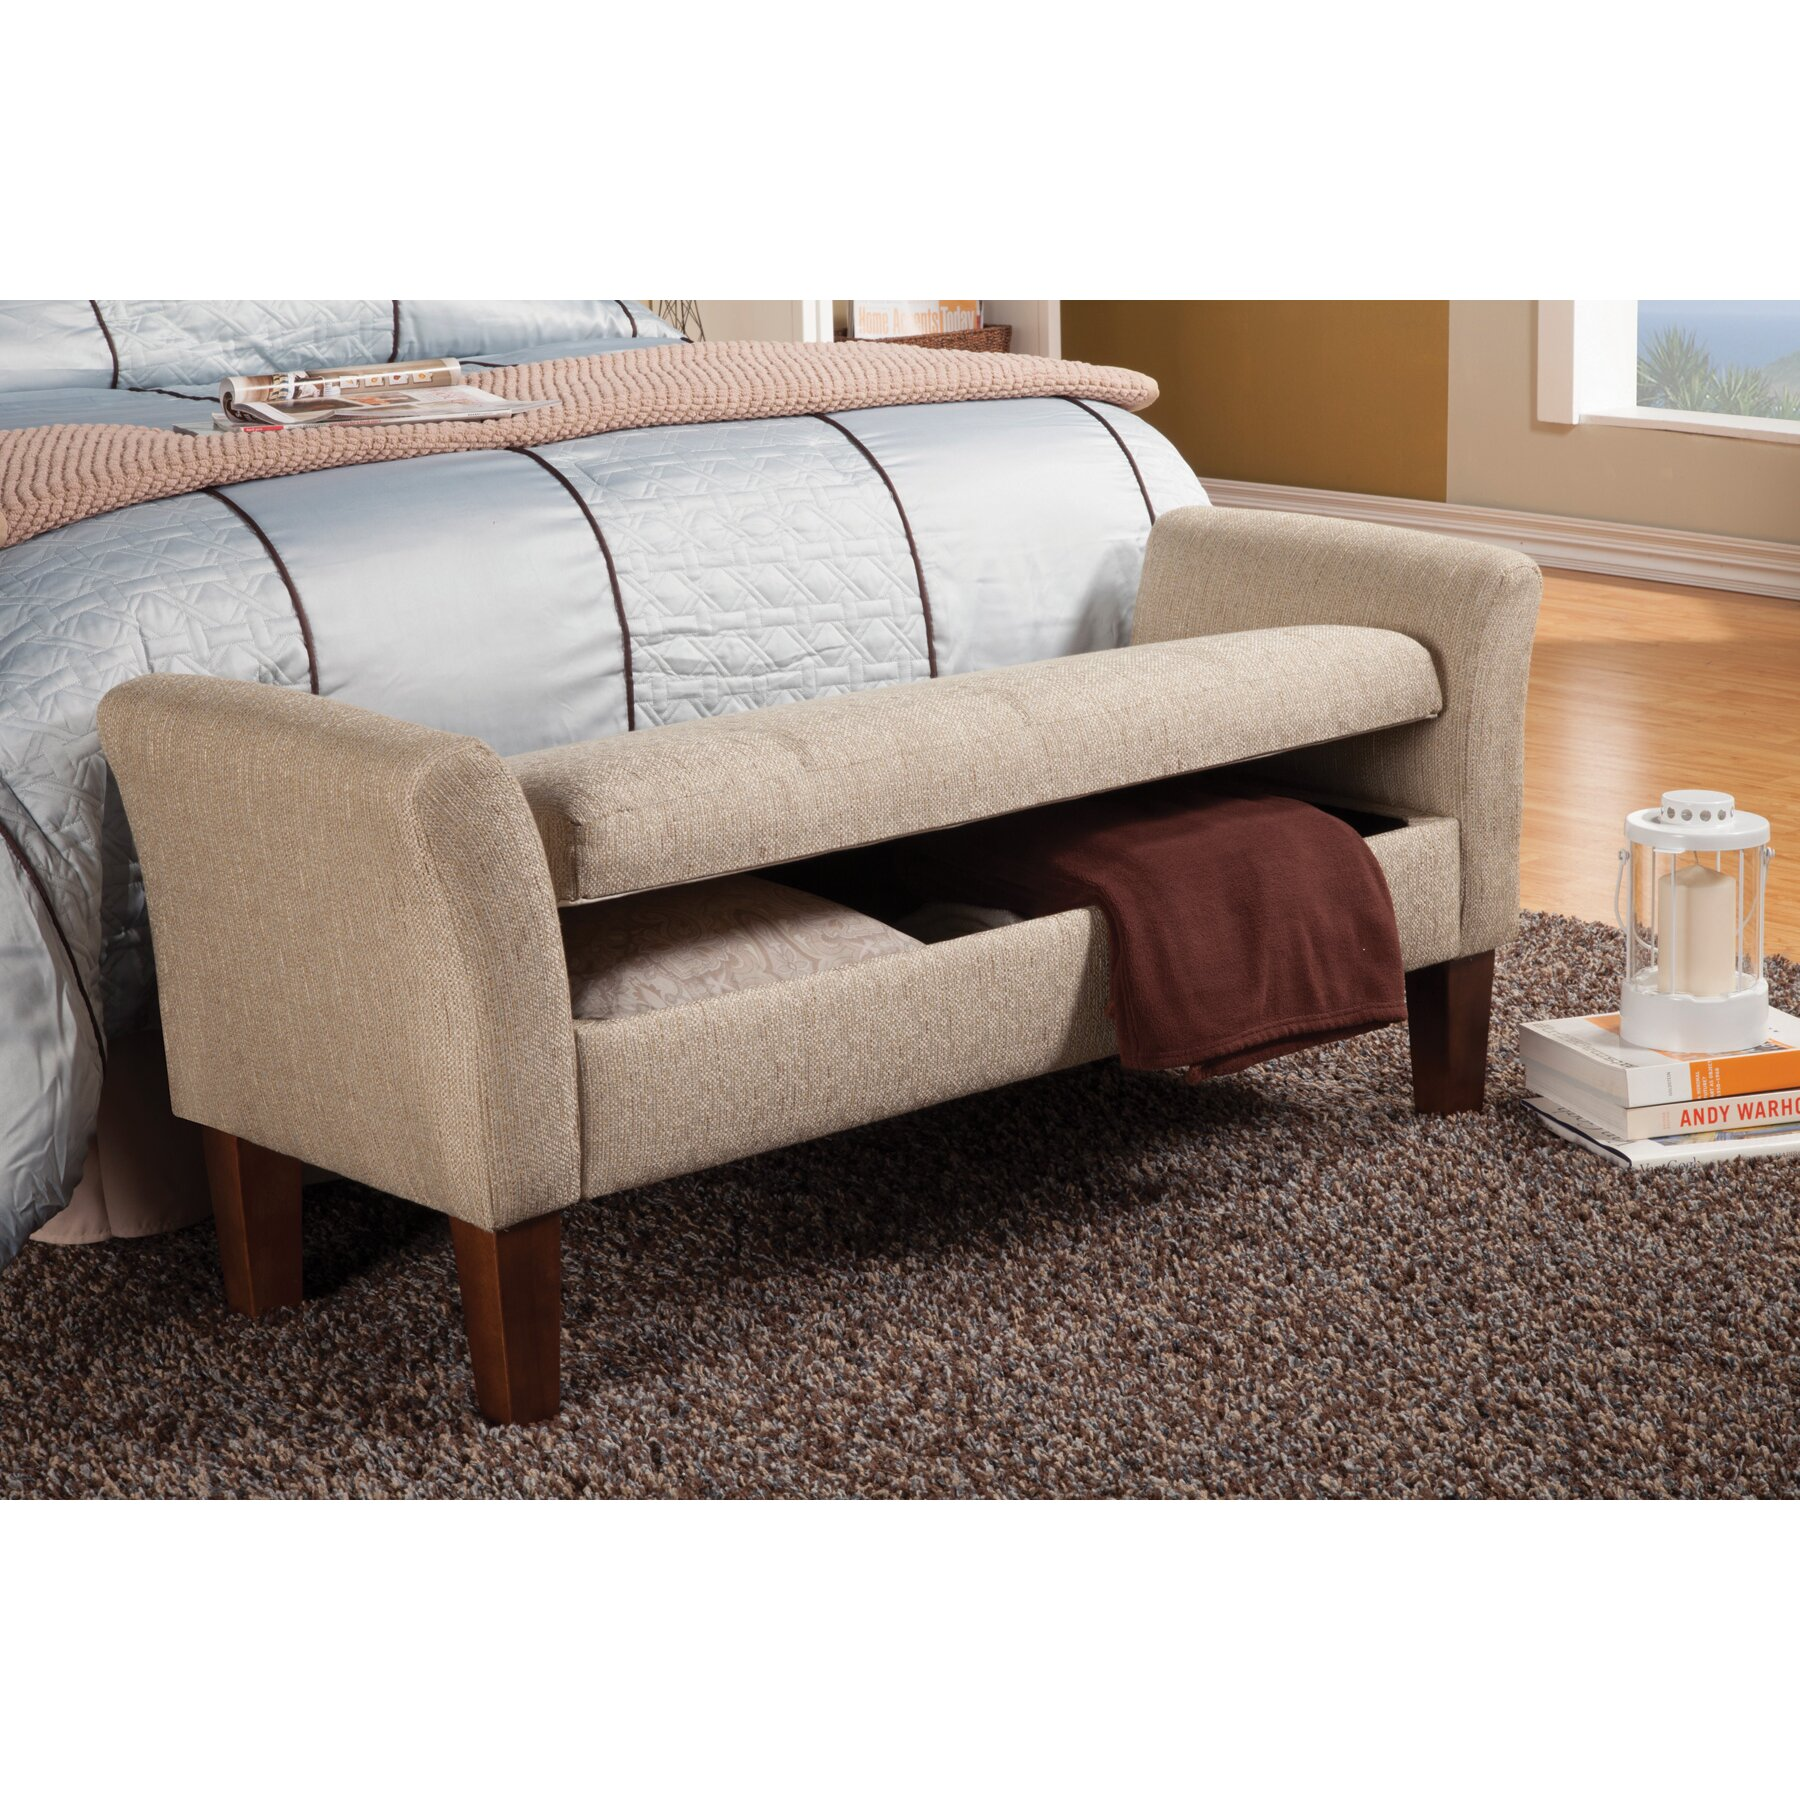 Wildon home upholstered storage bedroom bench reviews wayfair Bedroom storage bench